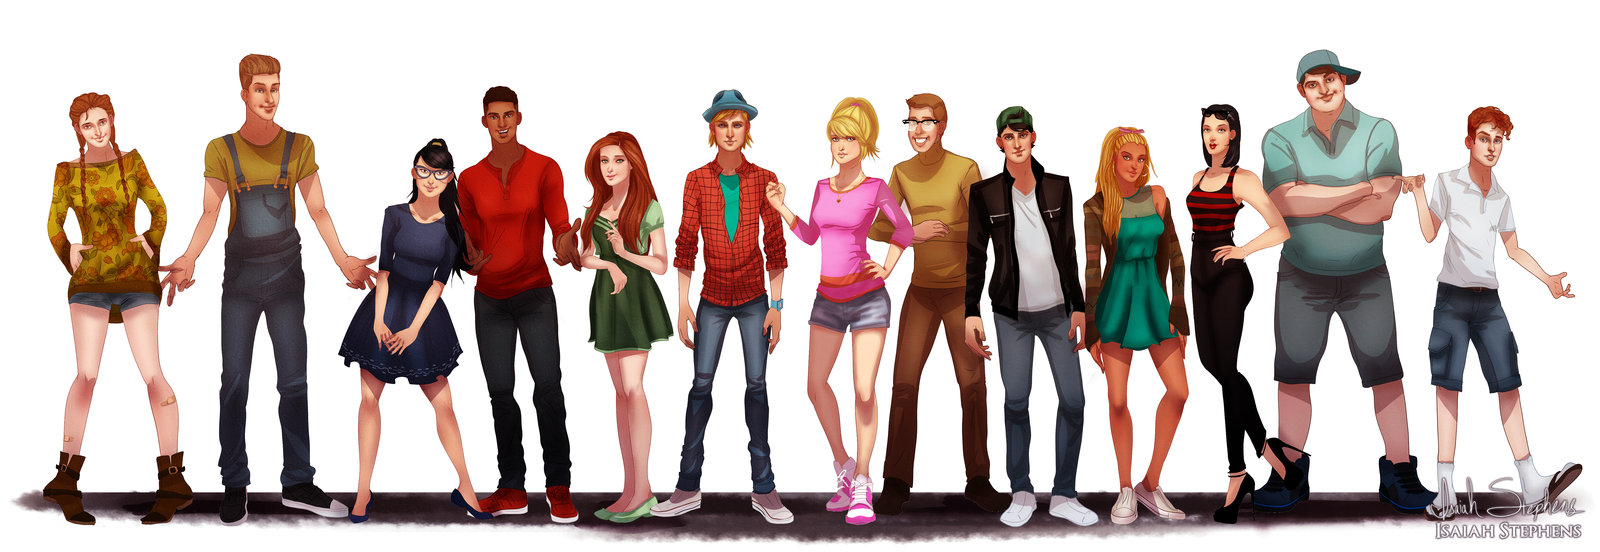 all_grown_up__hey_arnold_by_isaiahstephens-d73jkyp.png